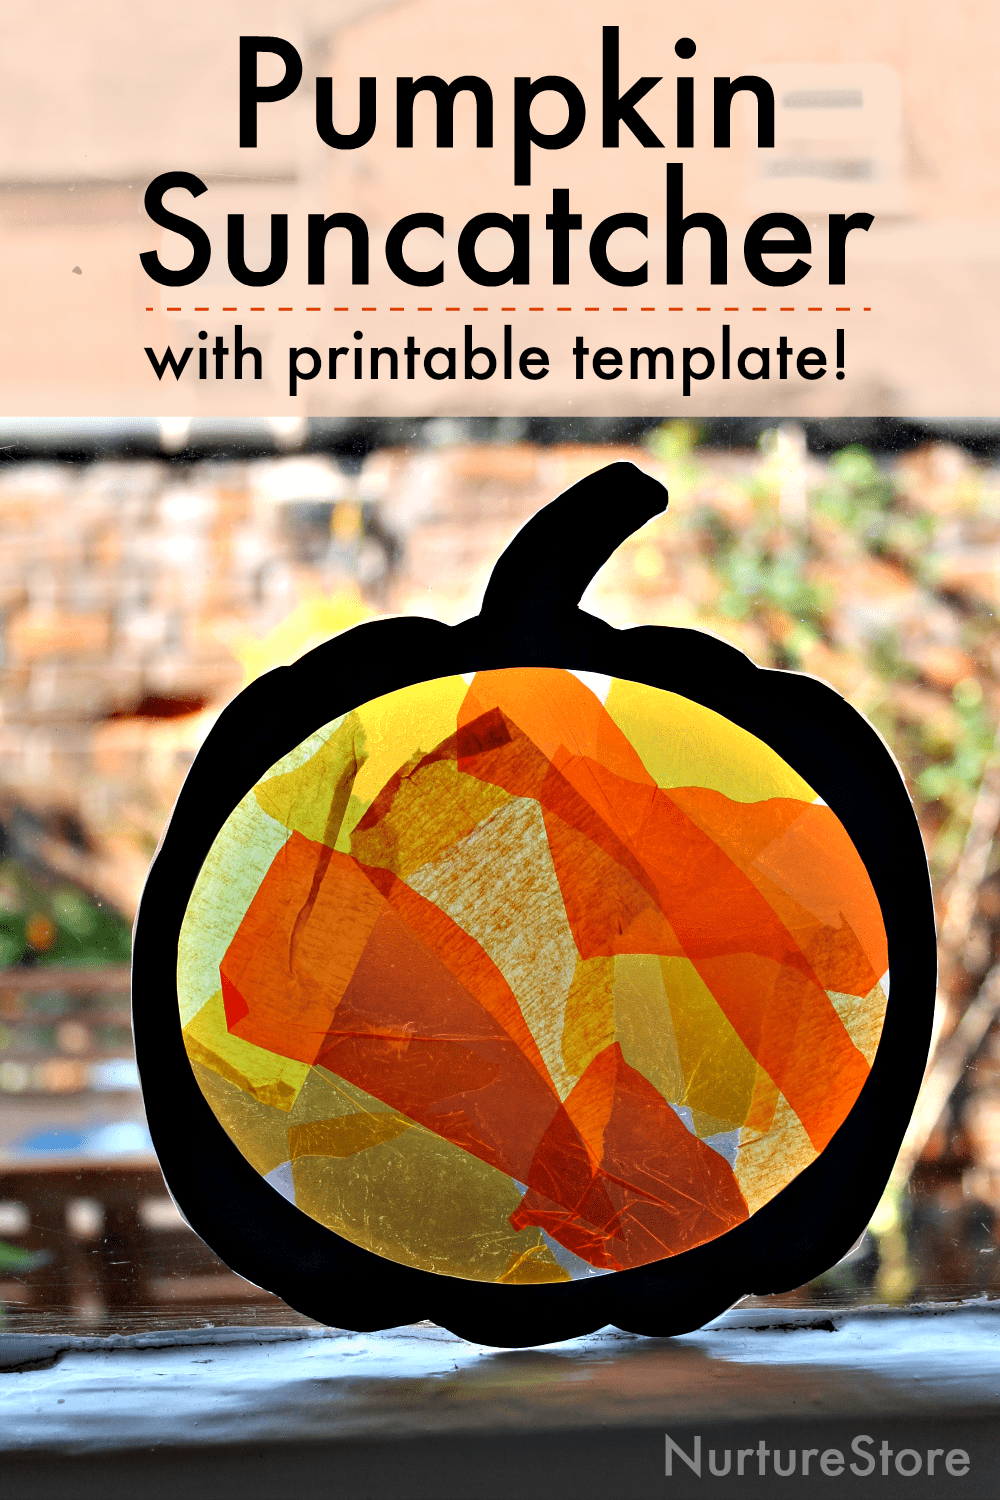 easy pumpkin suncatcher craft with printable template